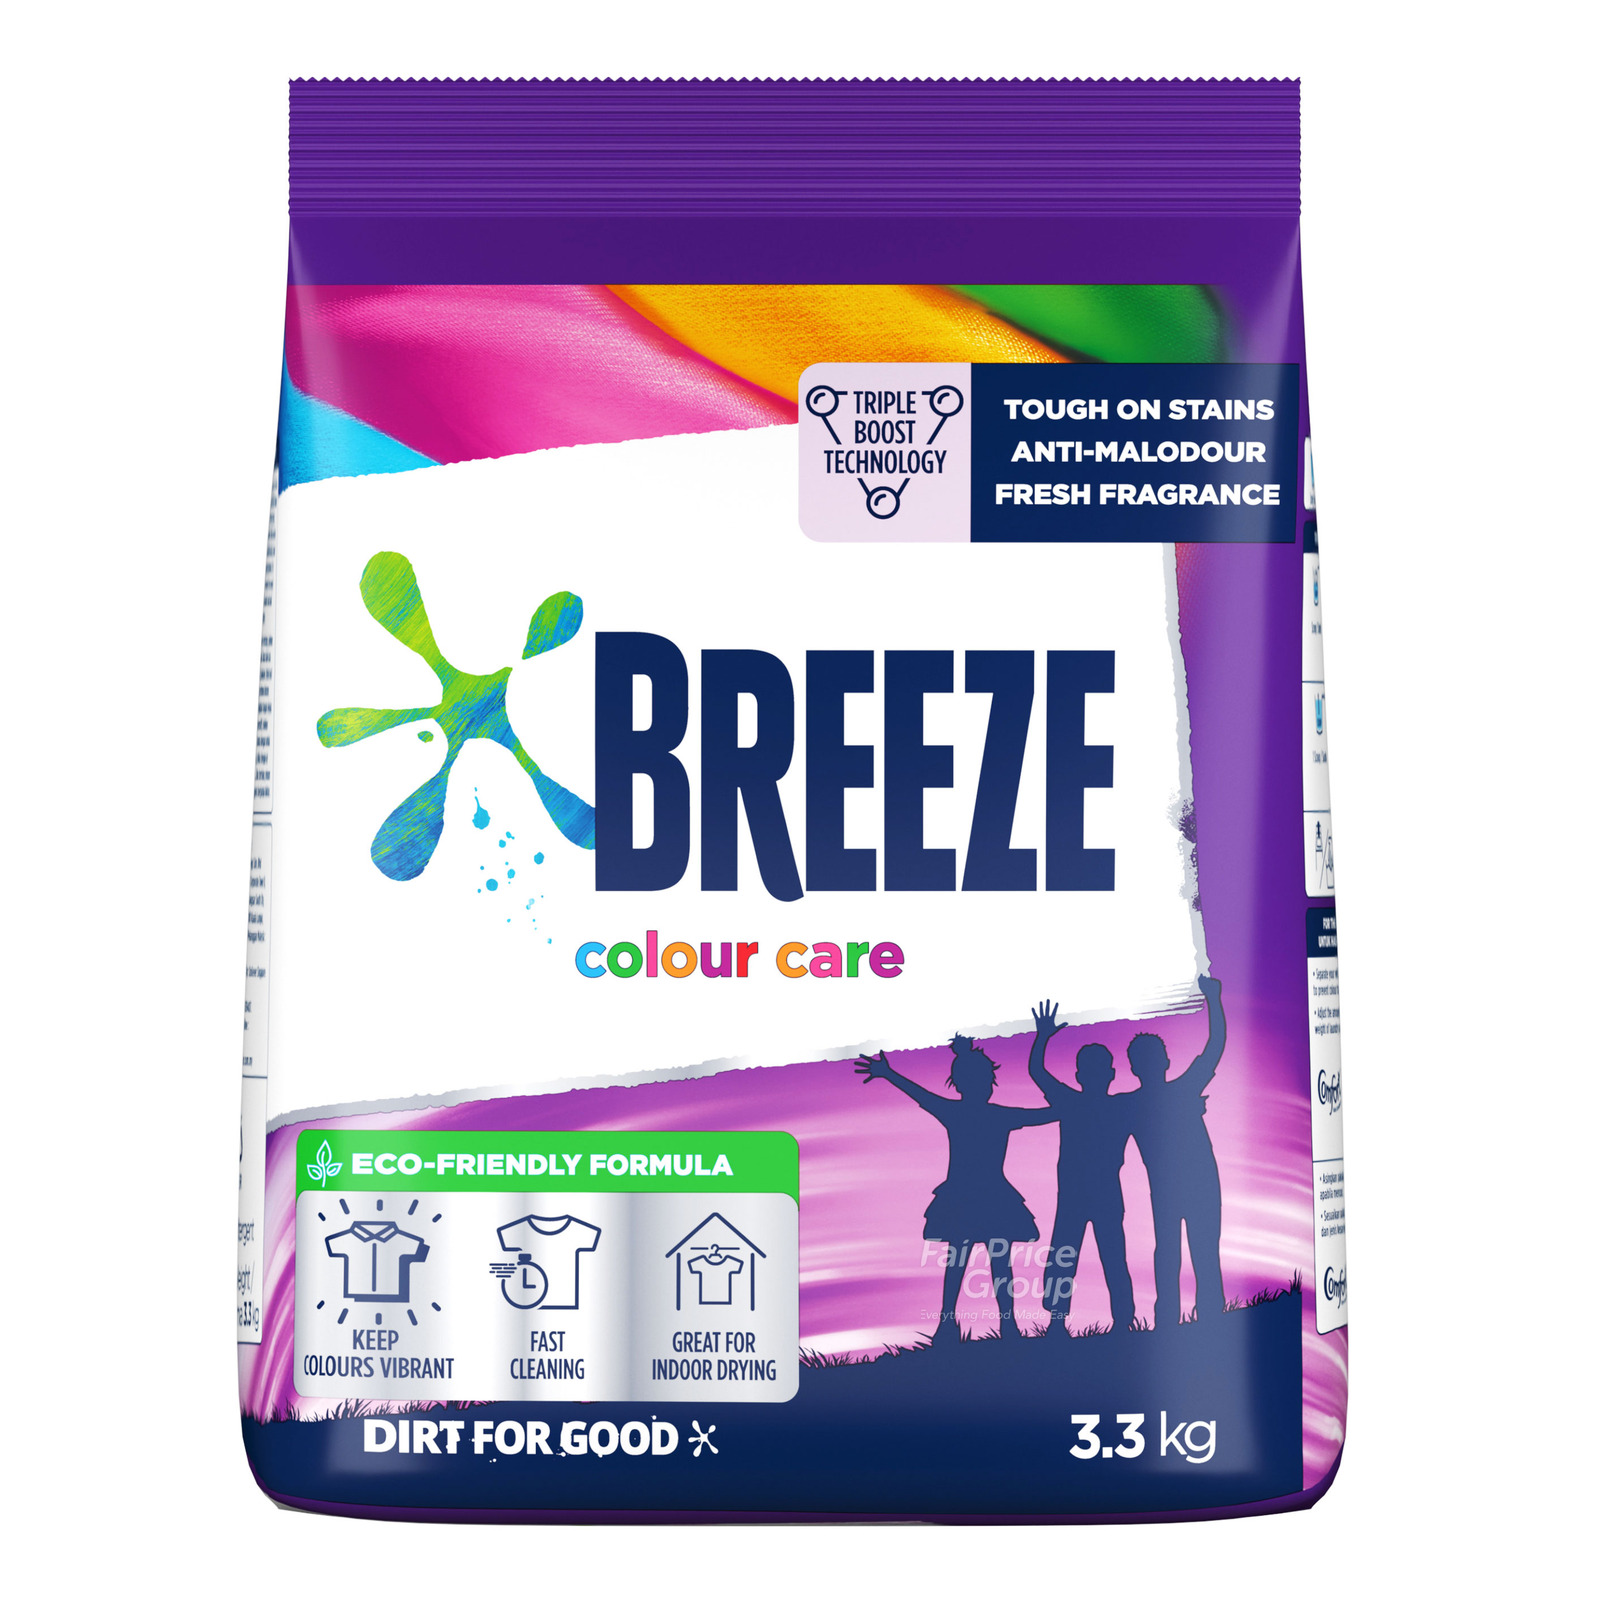 Breeze Powder Detergent - Colour Care